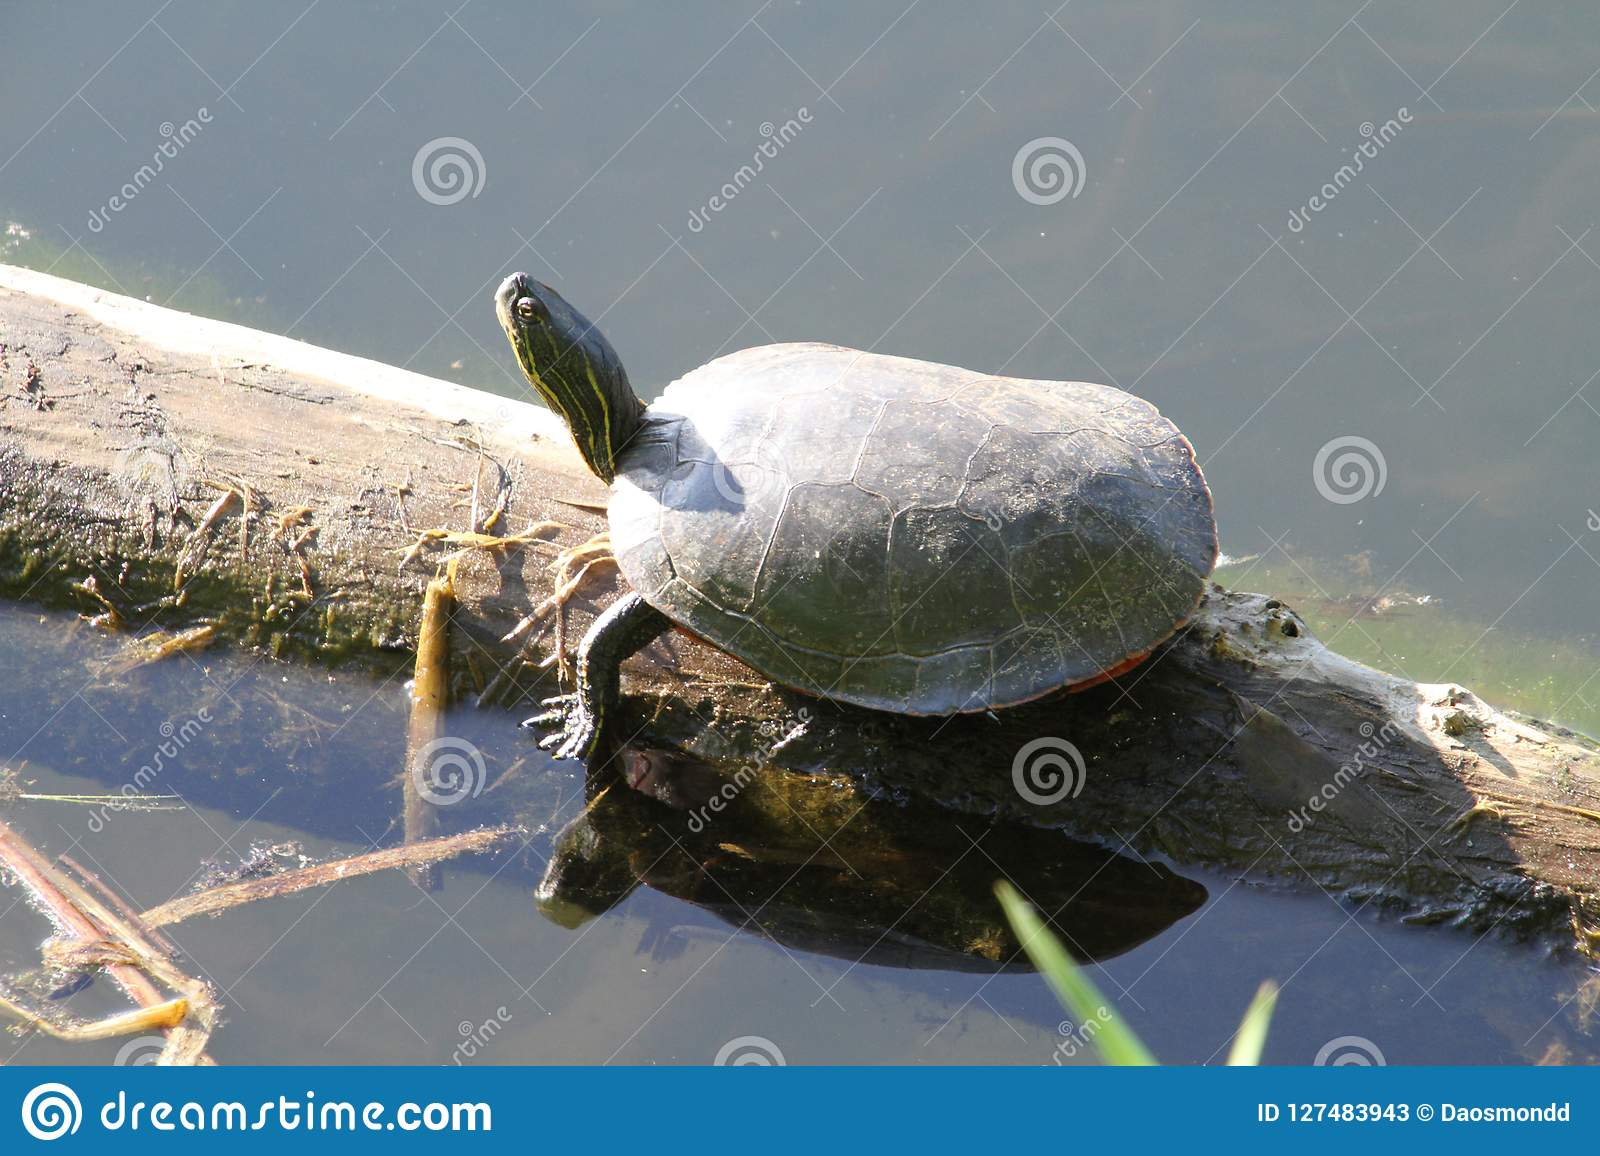 A larger turtle sitting on a log